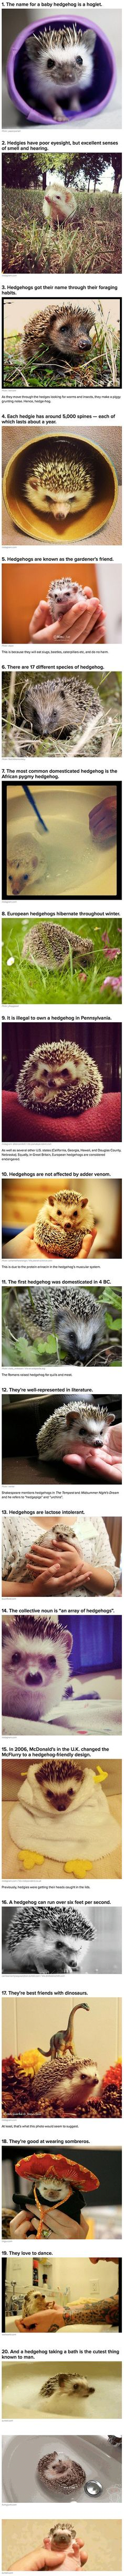 Here are some strange, yet true, things you may not have known about hedgehogs.